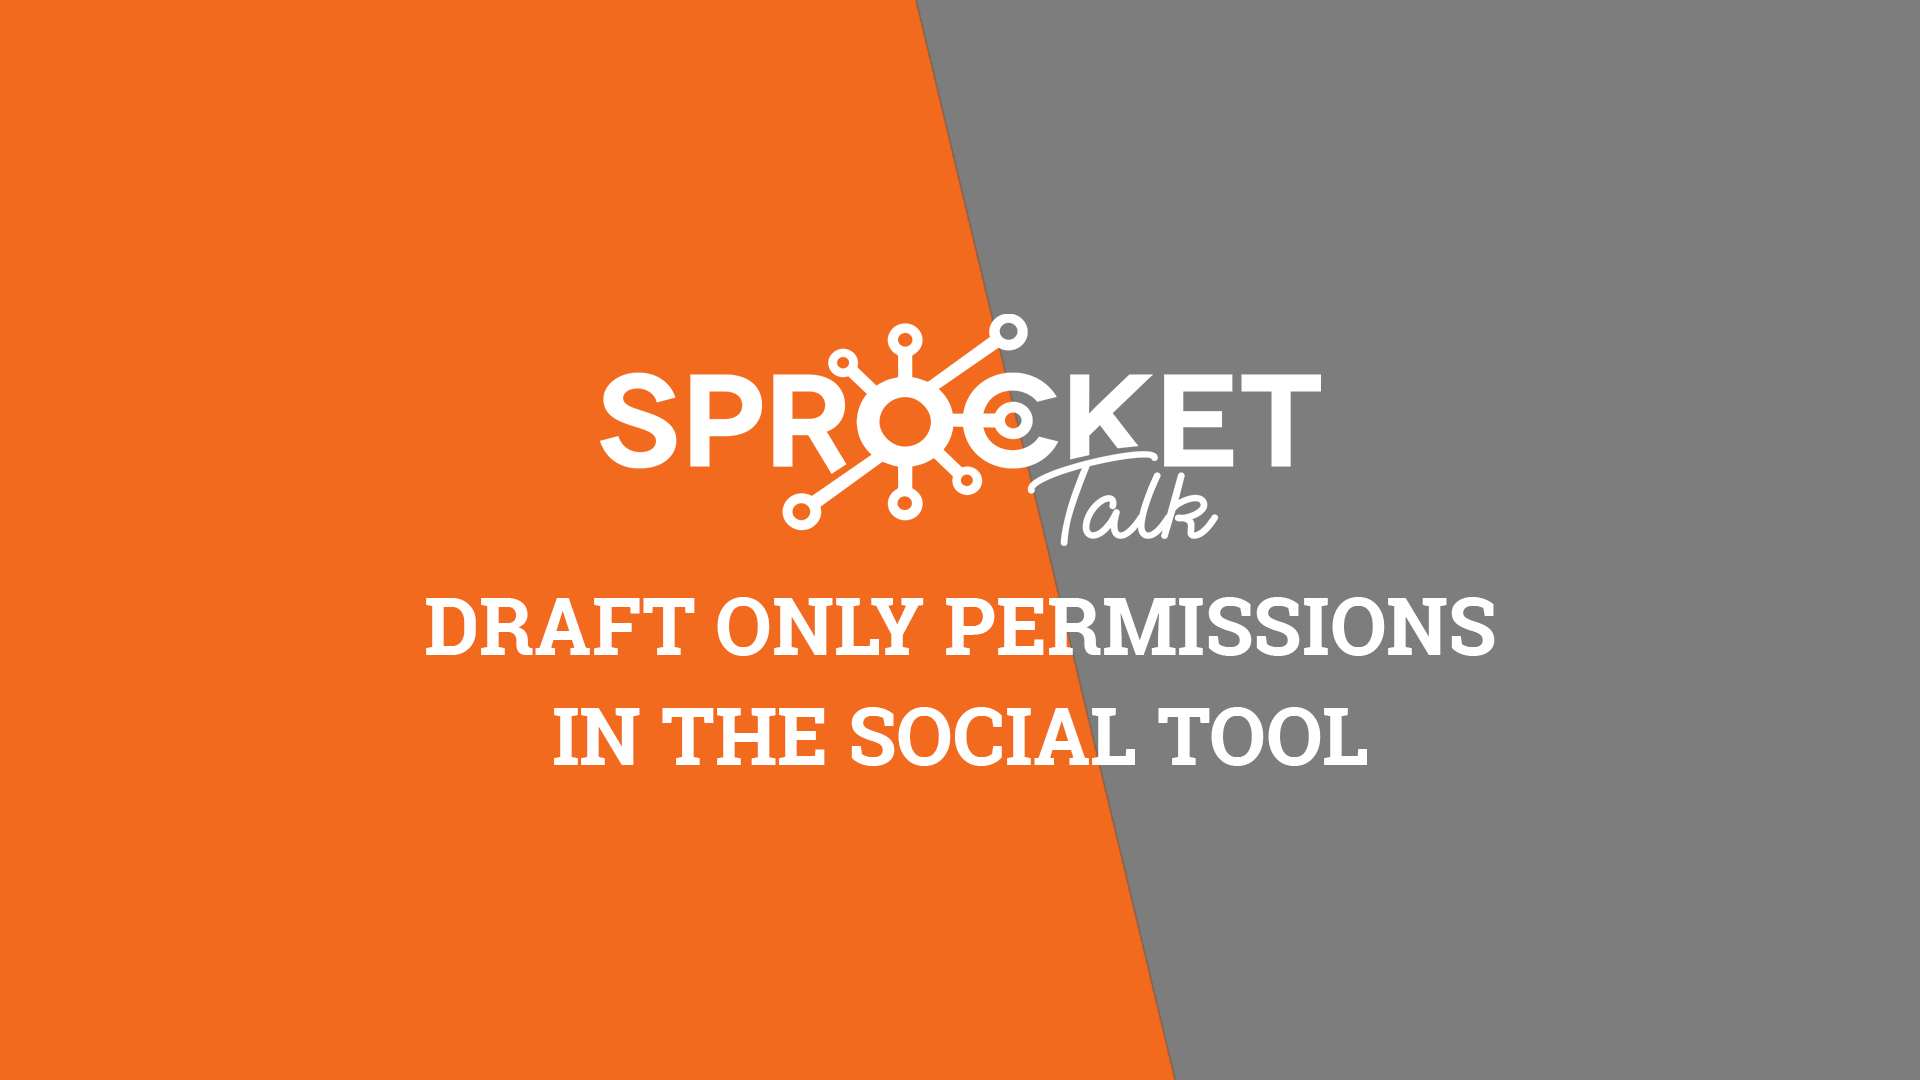 Draft Only Permissions in the Social Tool